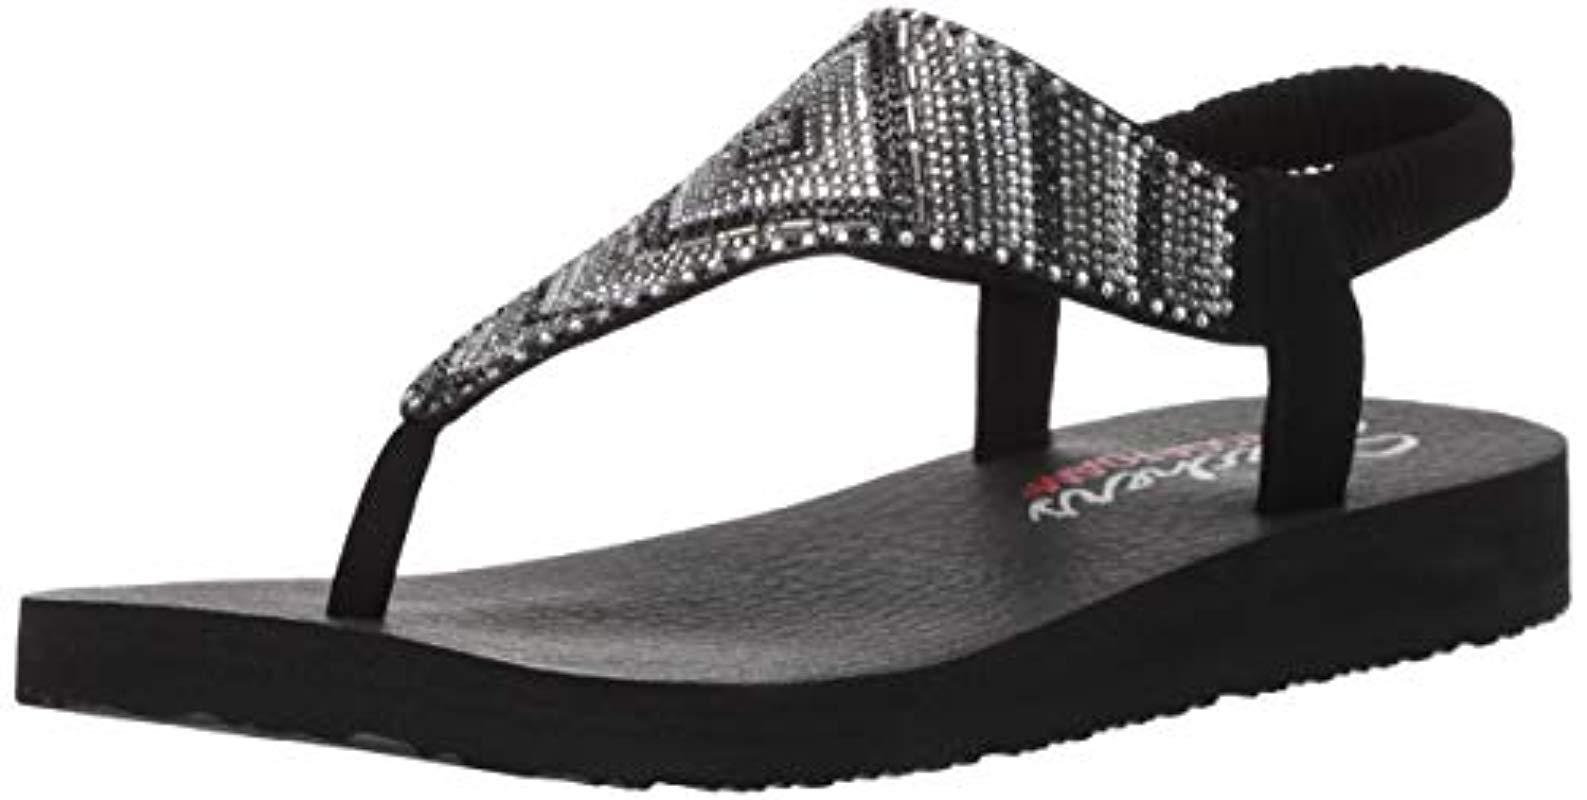 32b08c39417 Skechers. Women s Black Meditation-gypsy Glam-hooded Aztec Rhinestone  Slingback Thong Flip-flop